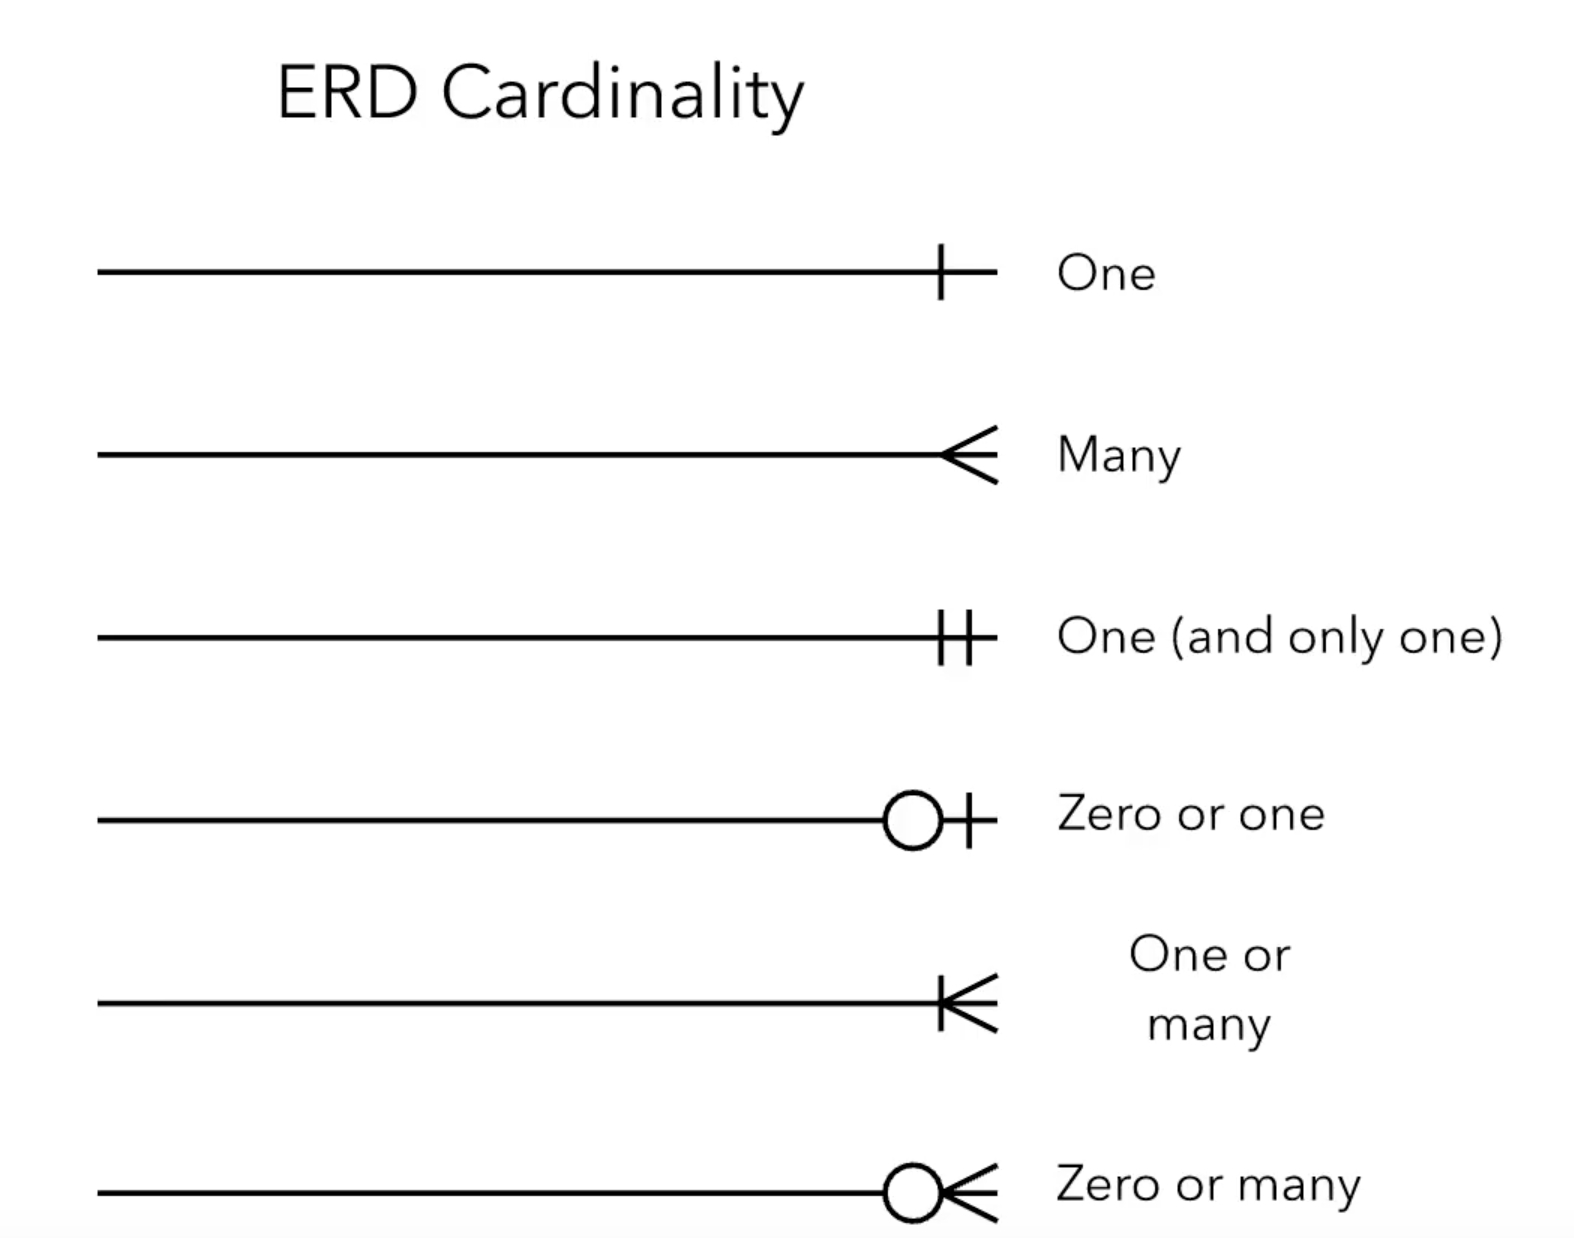 Er Diagram - Are The Relations And Cardinalities Correct throughout Er Diagram Cardinality